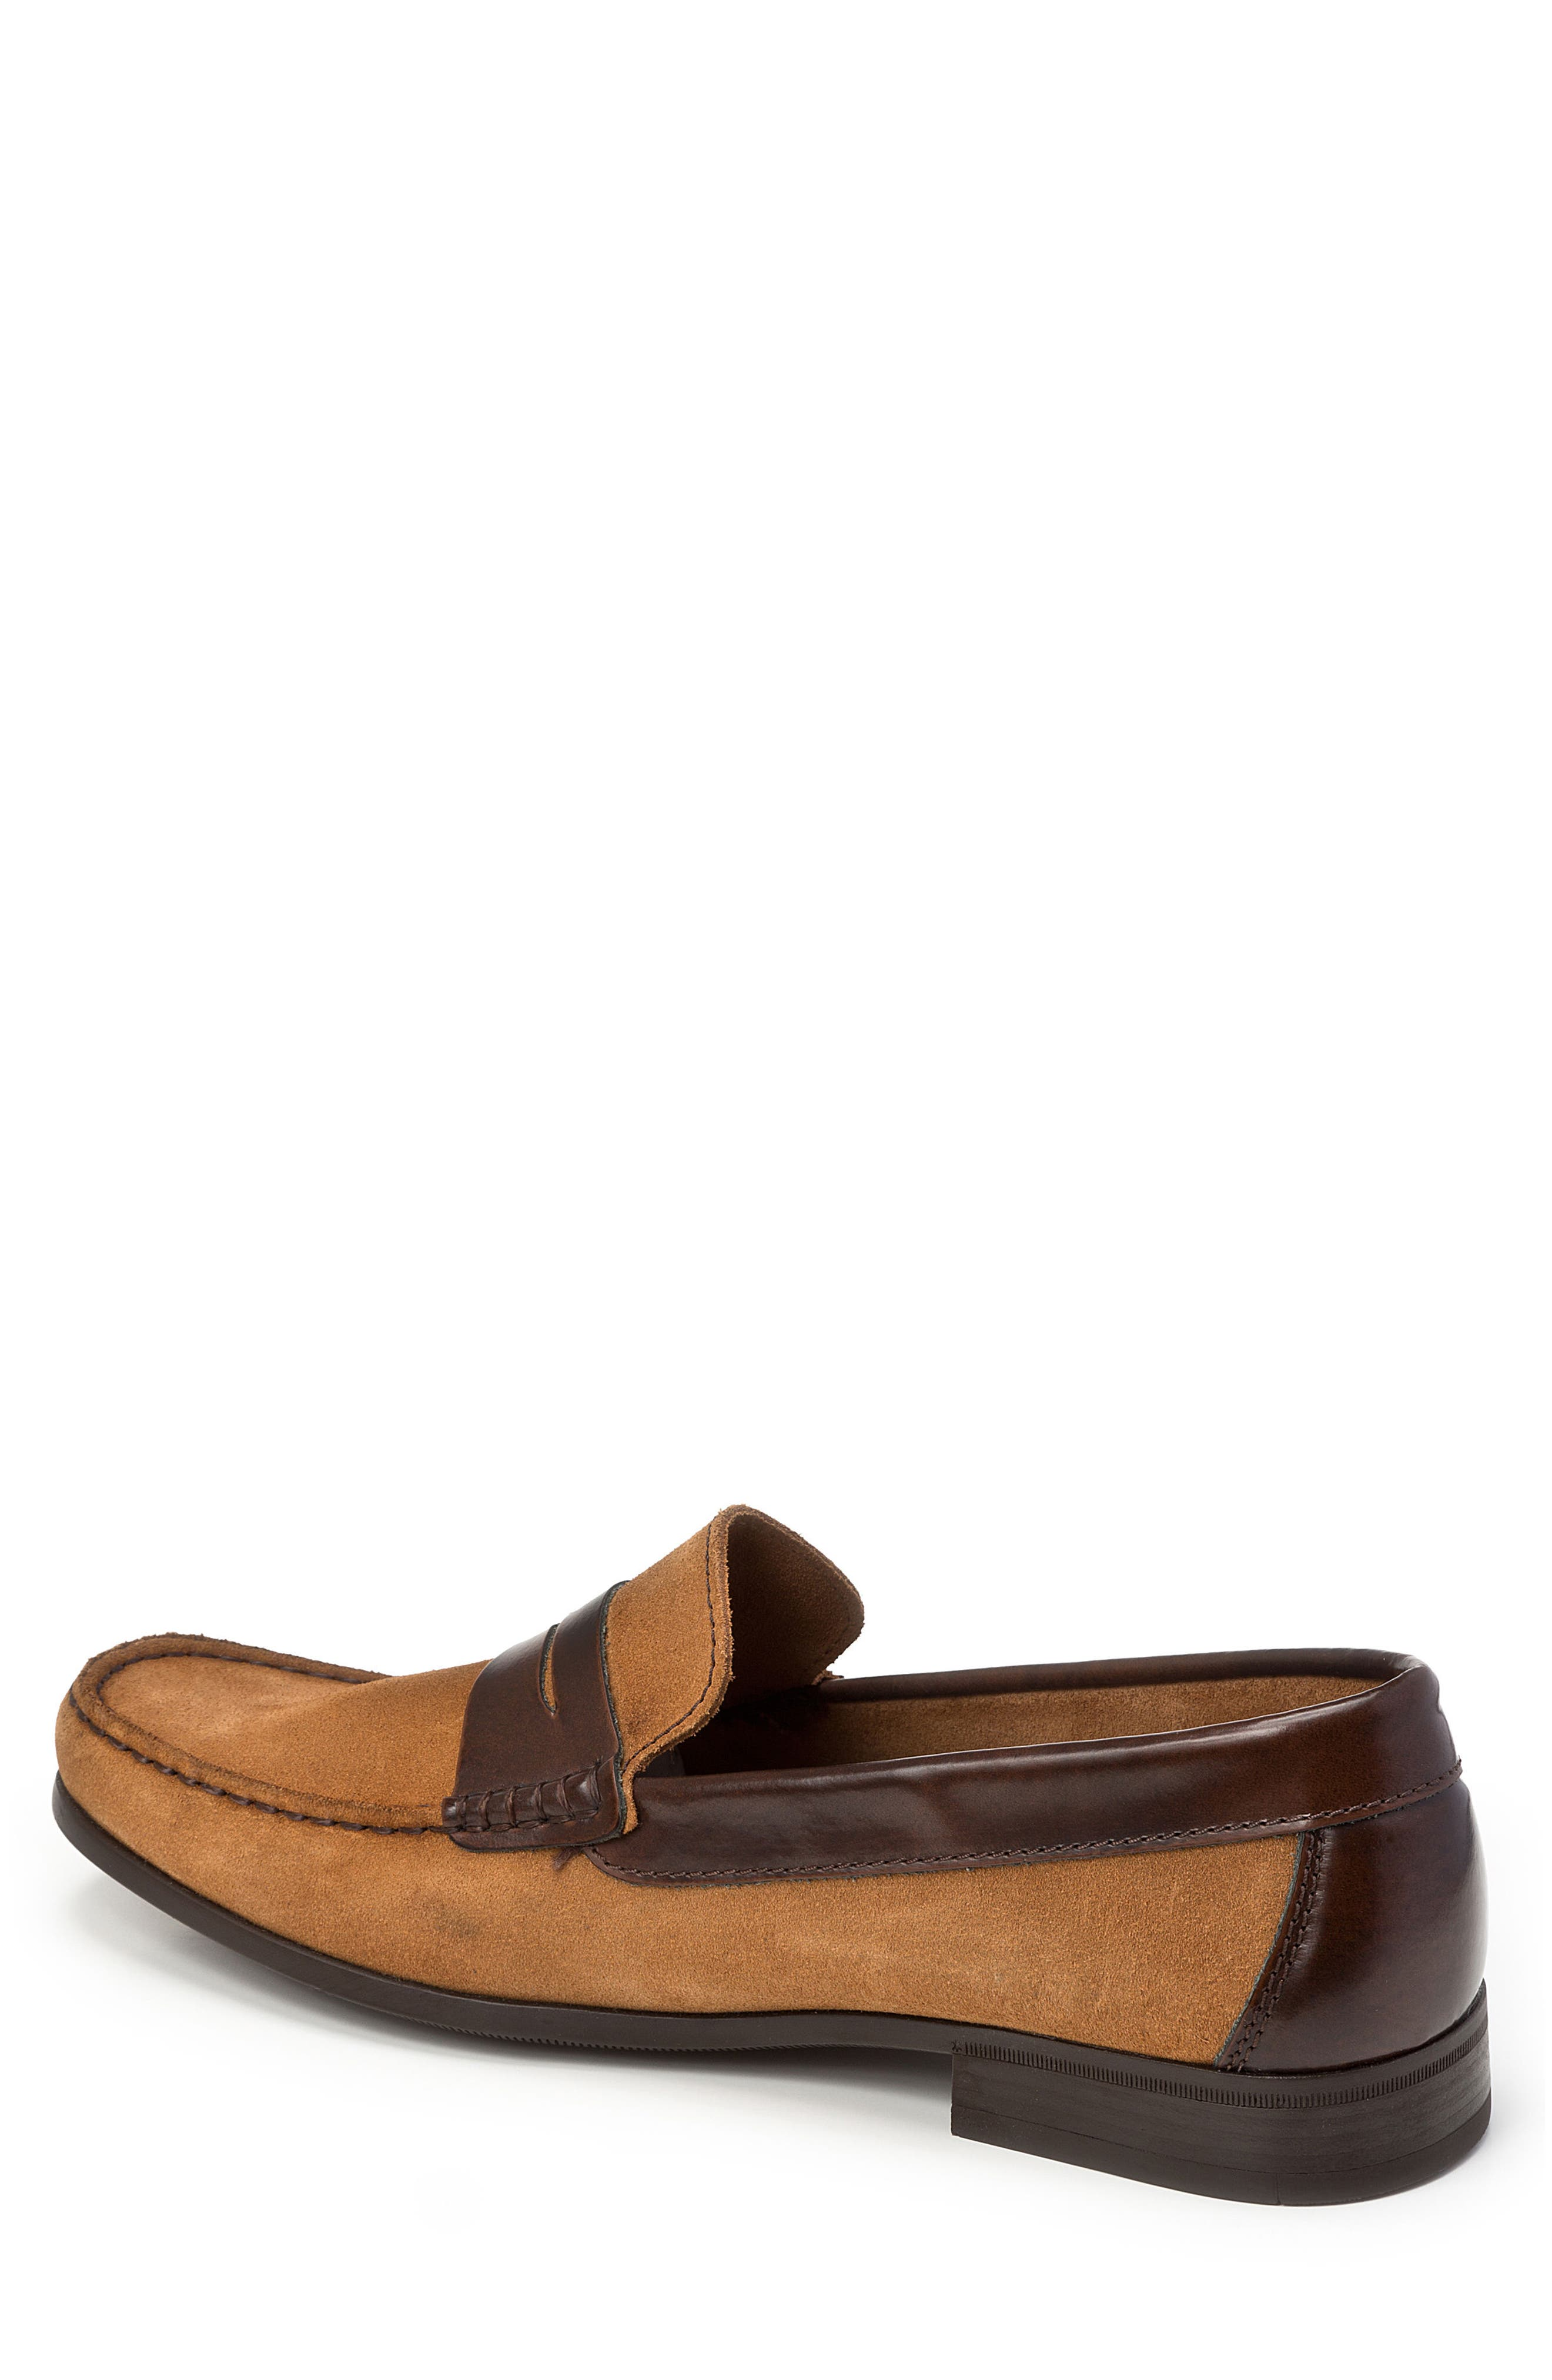 Lucho Penny Loafer,                             Alternate thumbnail 2, color,                             230